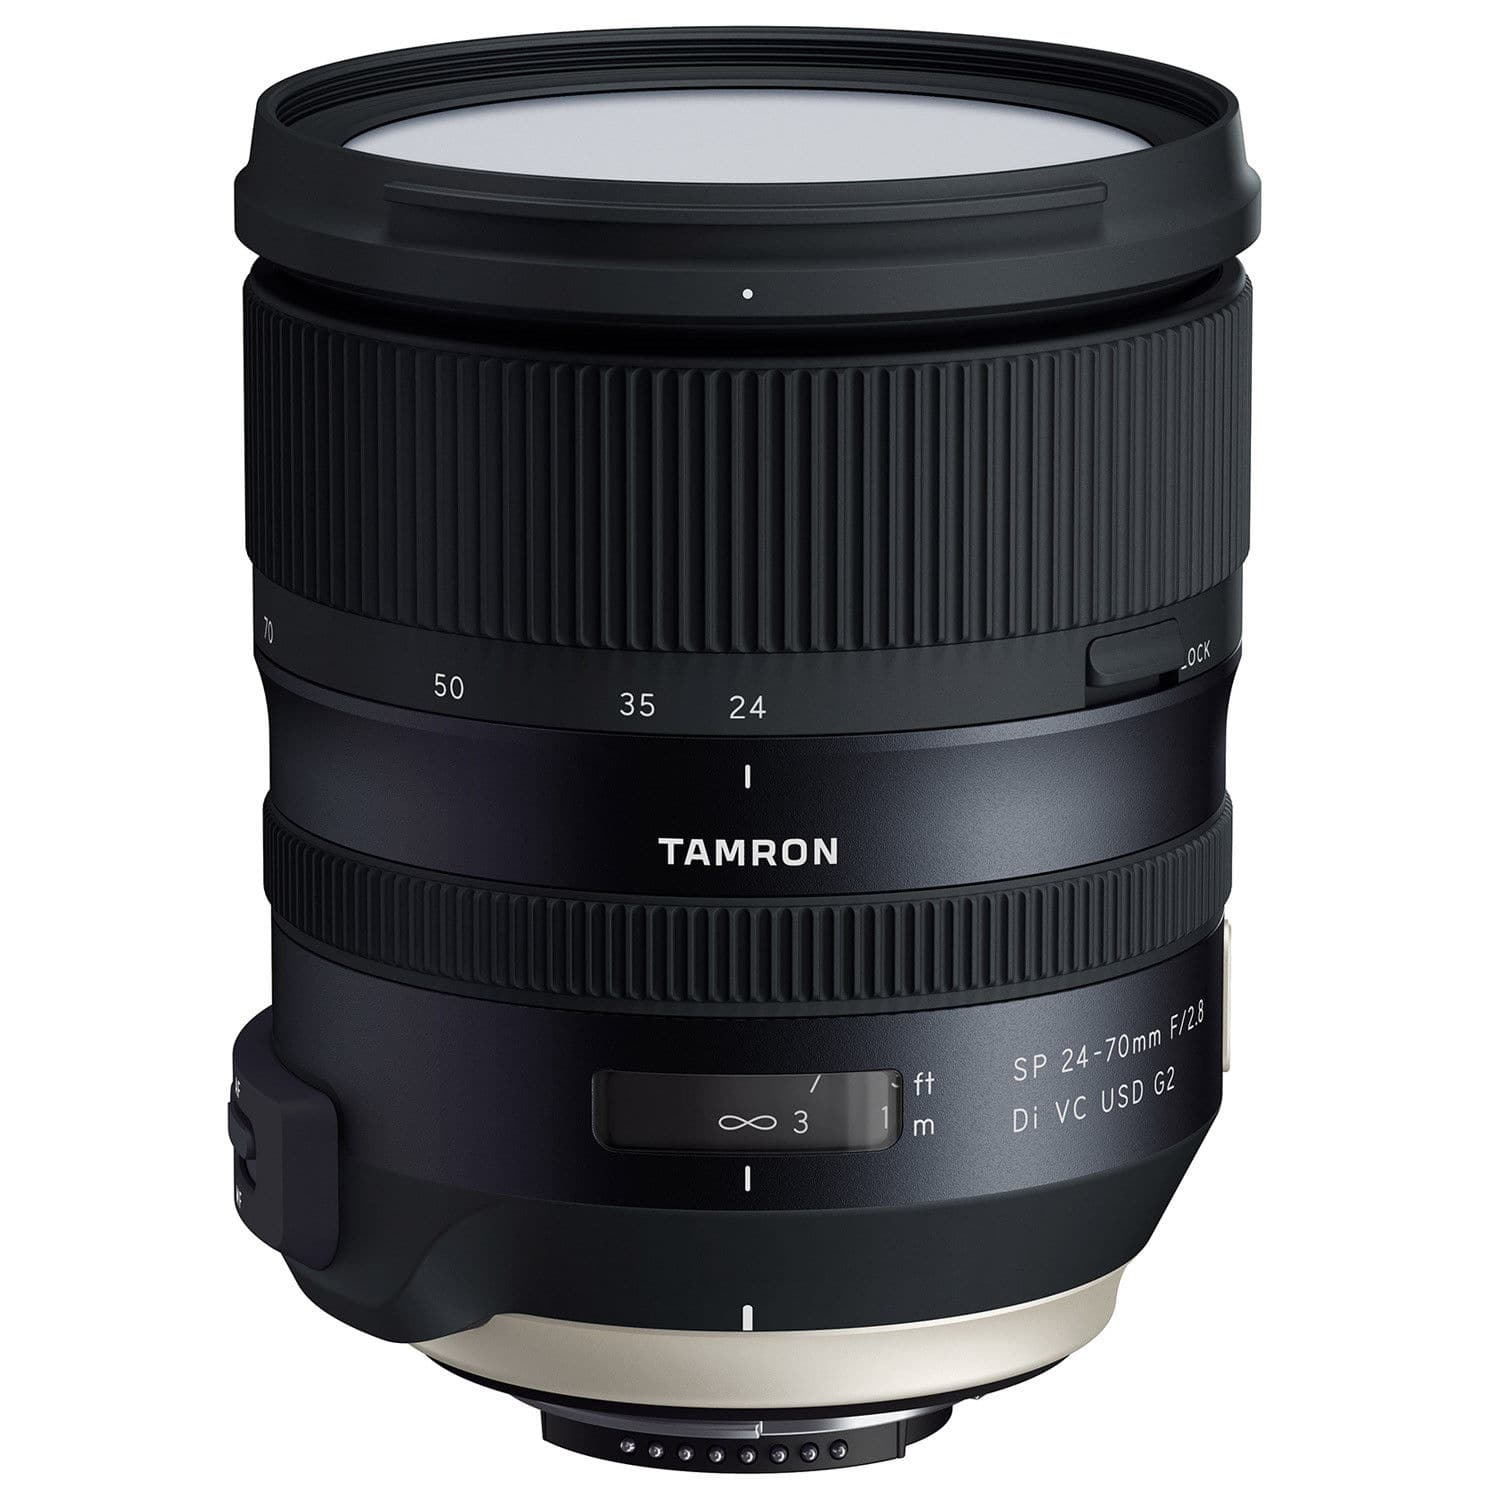 Tamron SP 24-70mm f/2.8 Di VC USD G2 Lens for Nikon & Canon $799 or less + free s/h